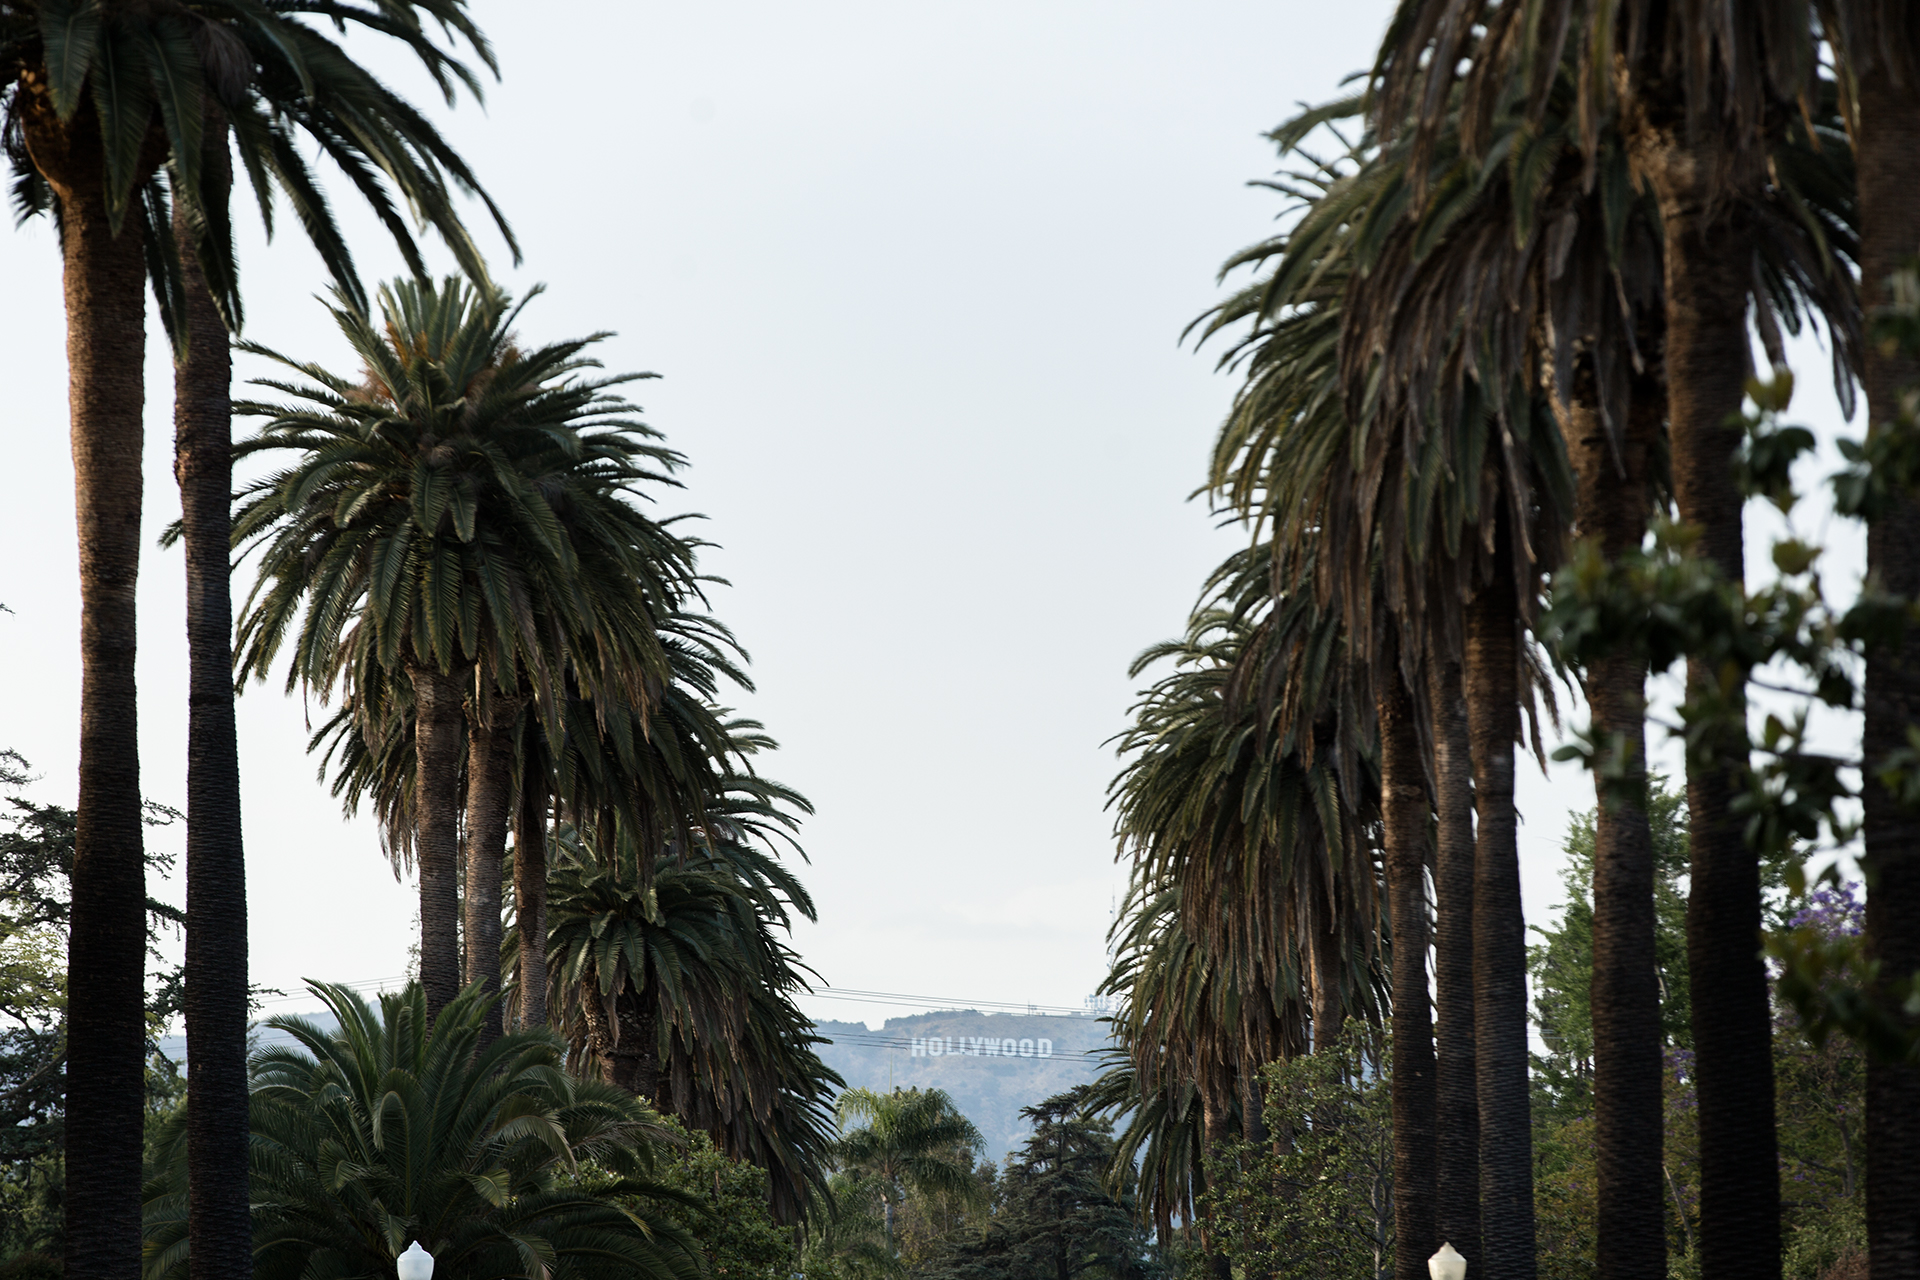 Hollywood Sign through Palm Trees in Los Angeles